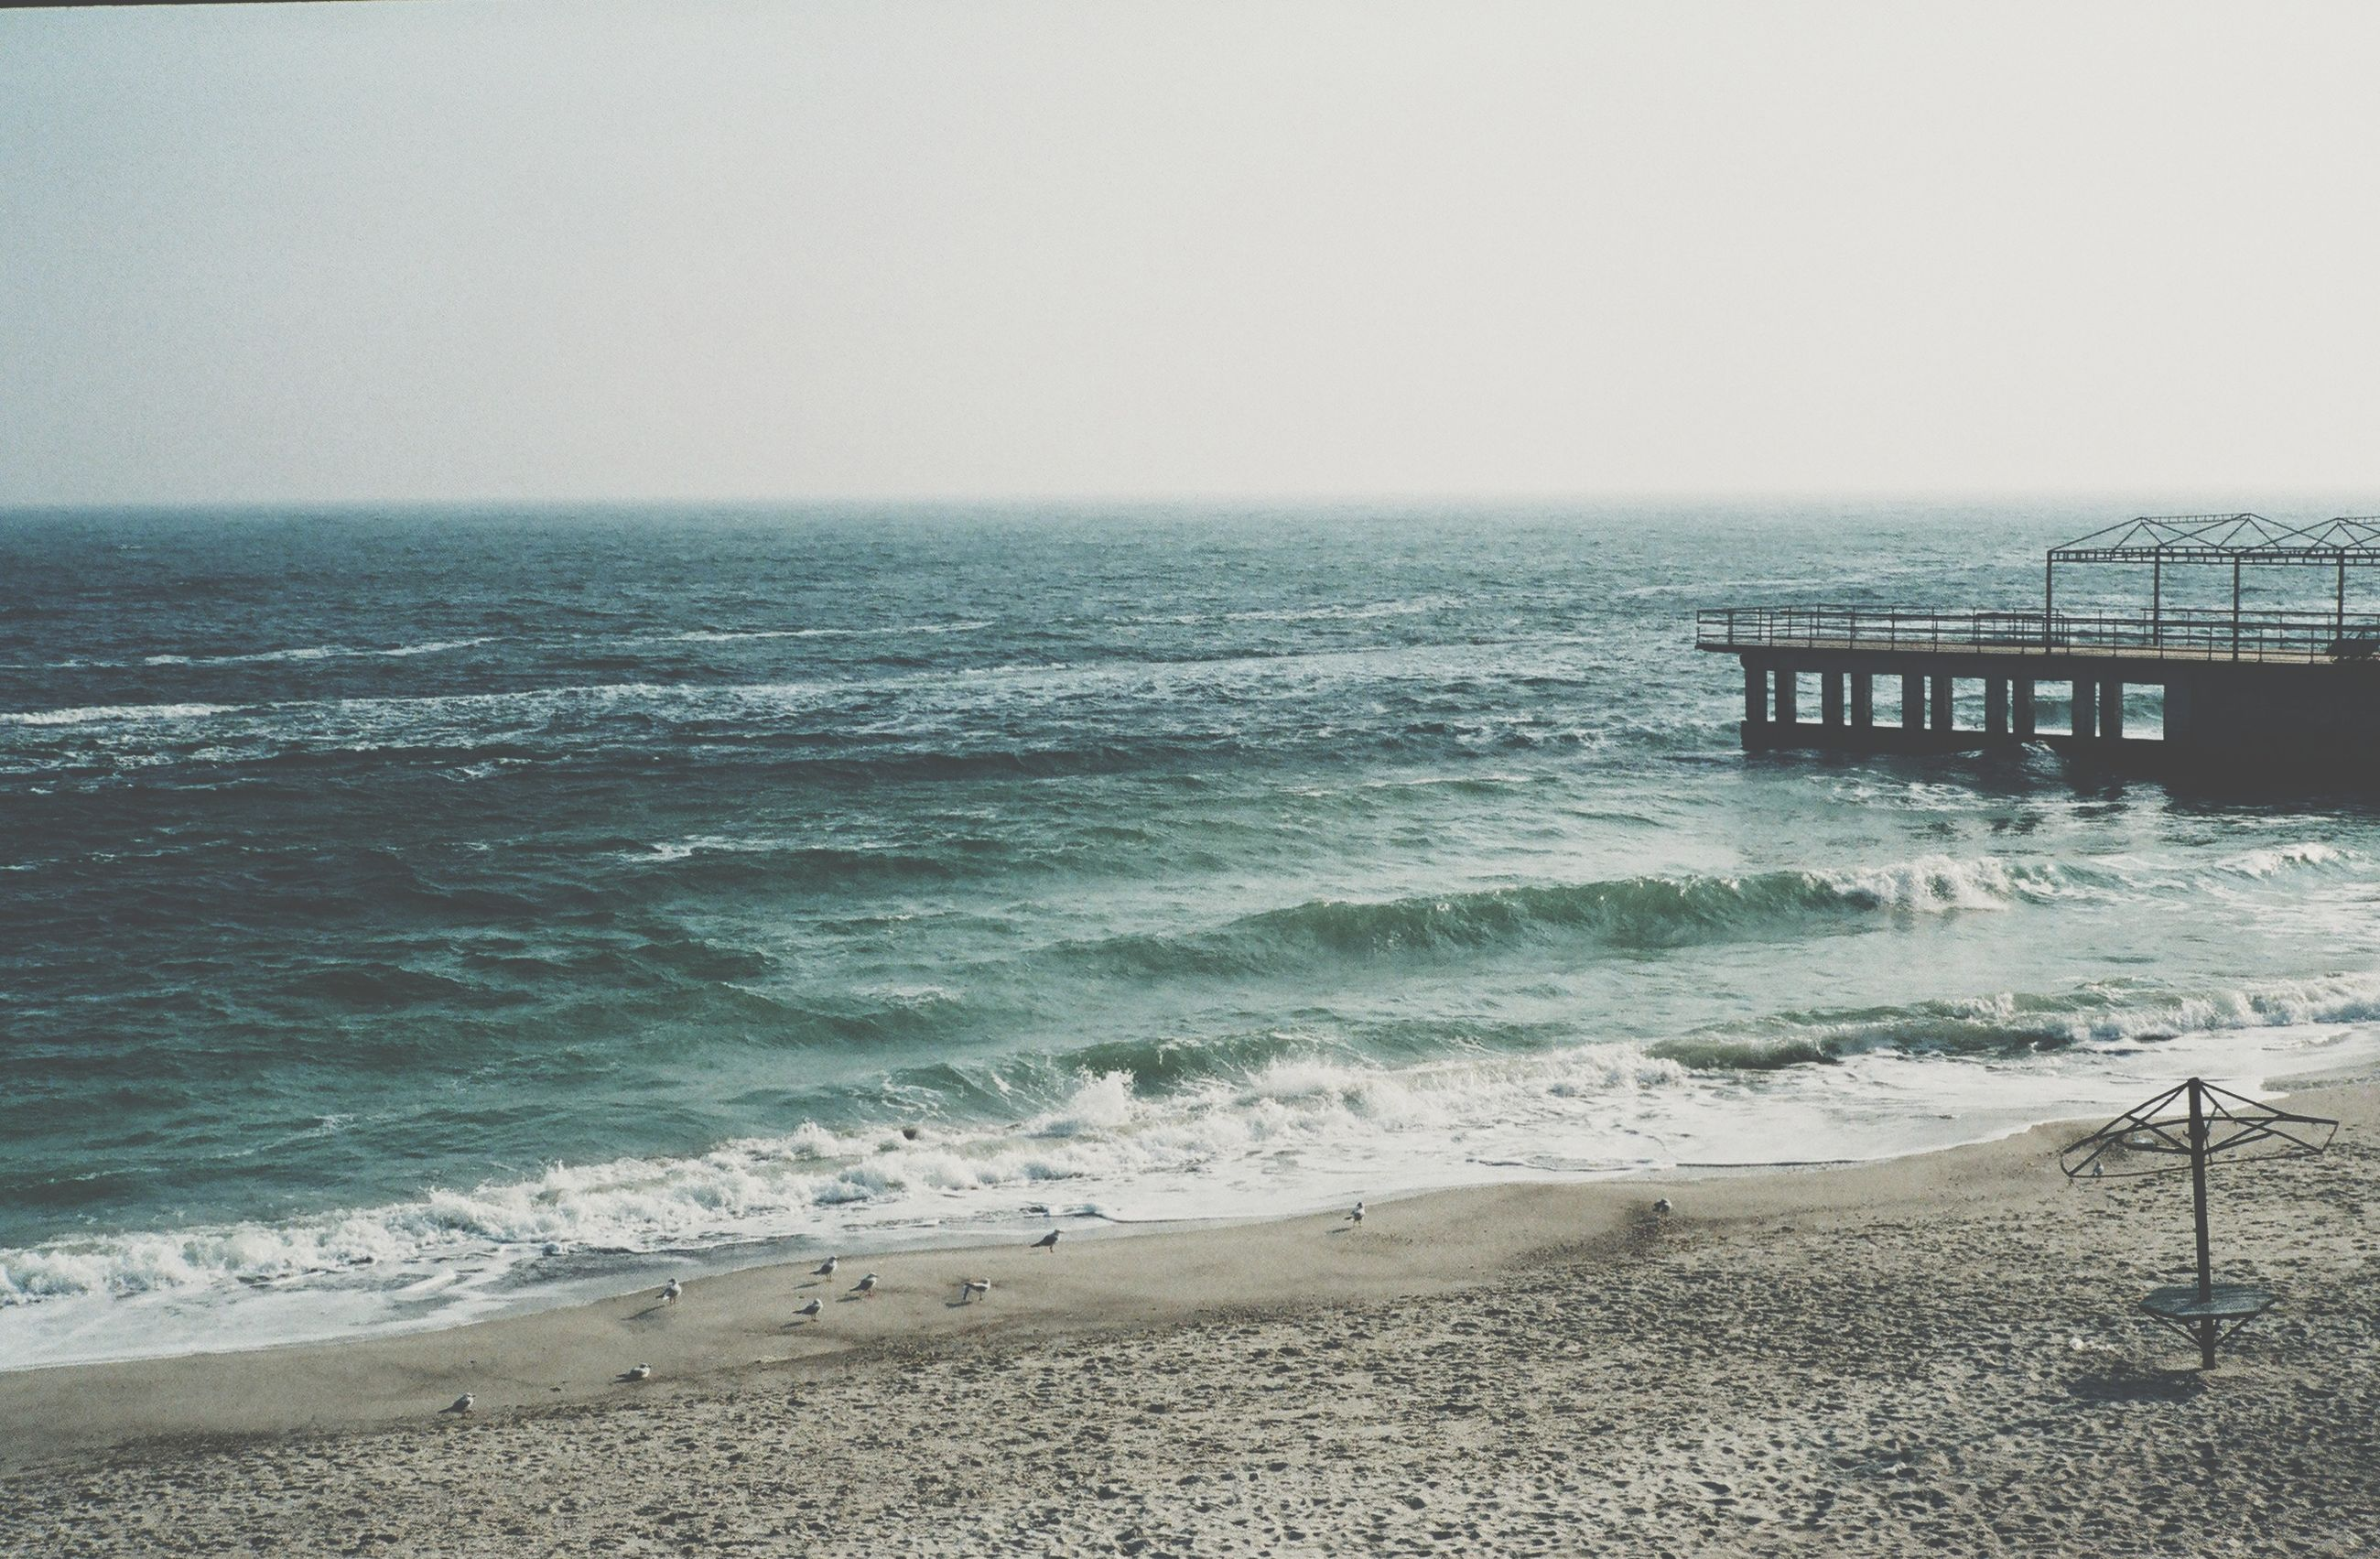 sea, horizon over water, beach, water, shore, wave, clear sky, scenics, sand, tranquil scene, tranquility, beauty in nature, surf, copy space, nature, idyllic, sky, incidental people, coastline, remote